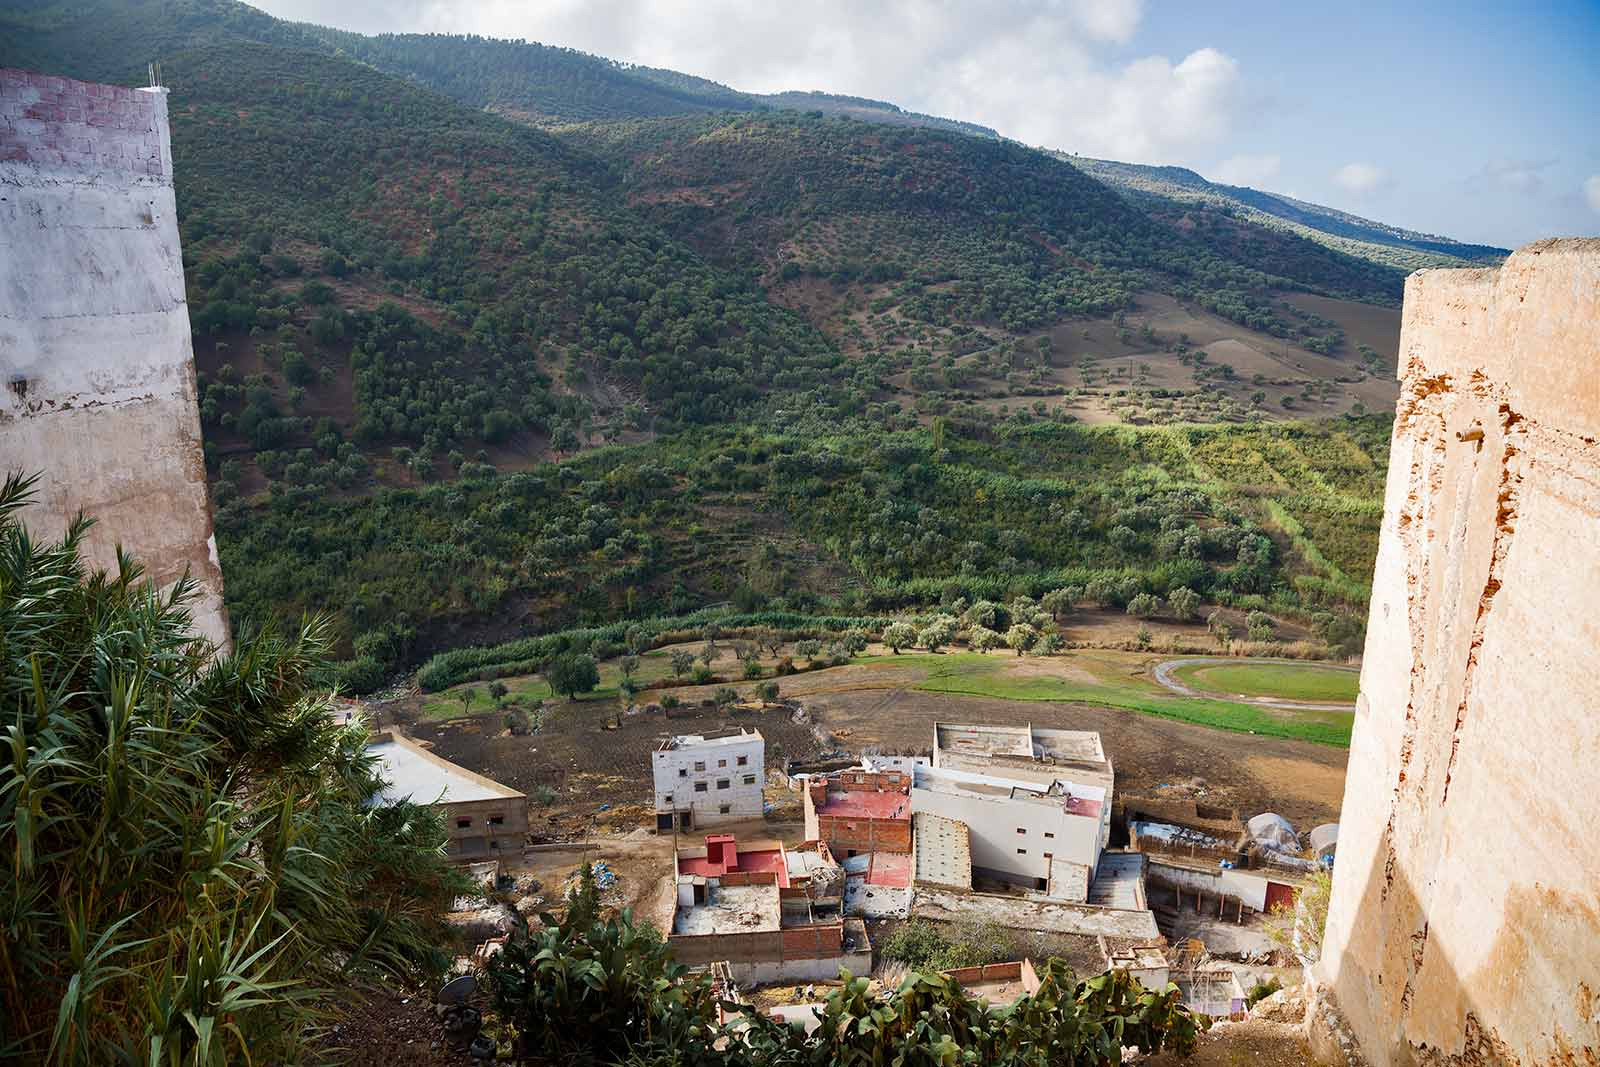 One reason the Romans chose Moulay Idriss was for its potential for making olive oil, which is today the town's primary product.